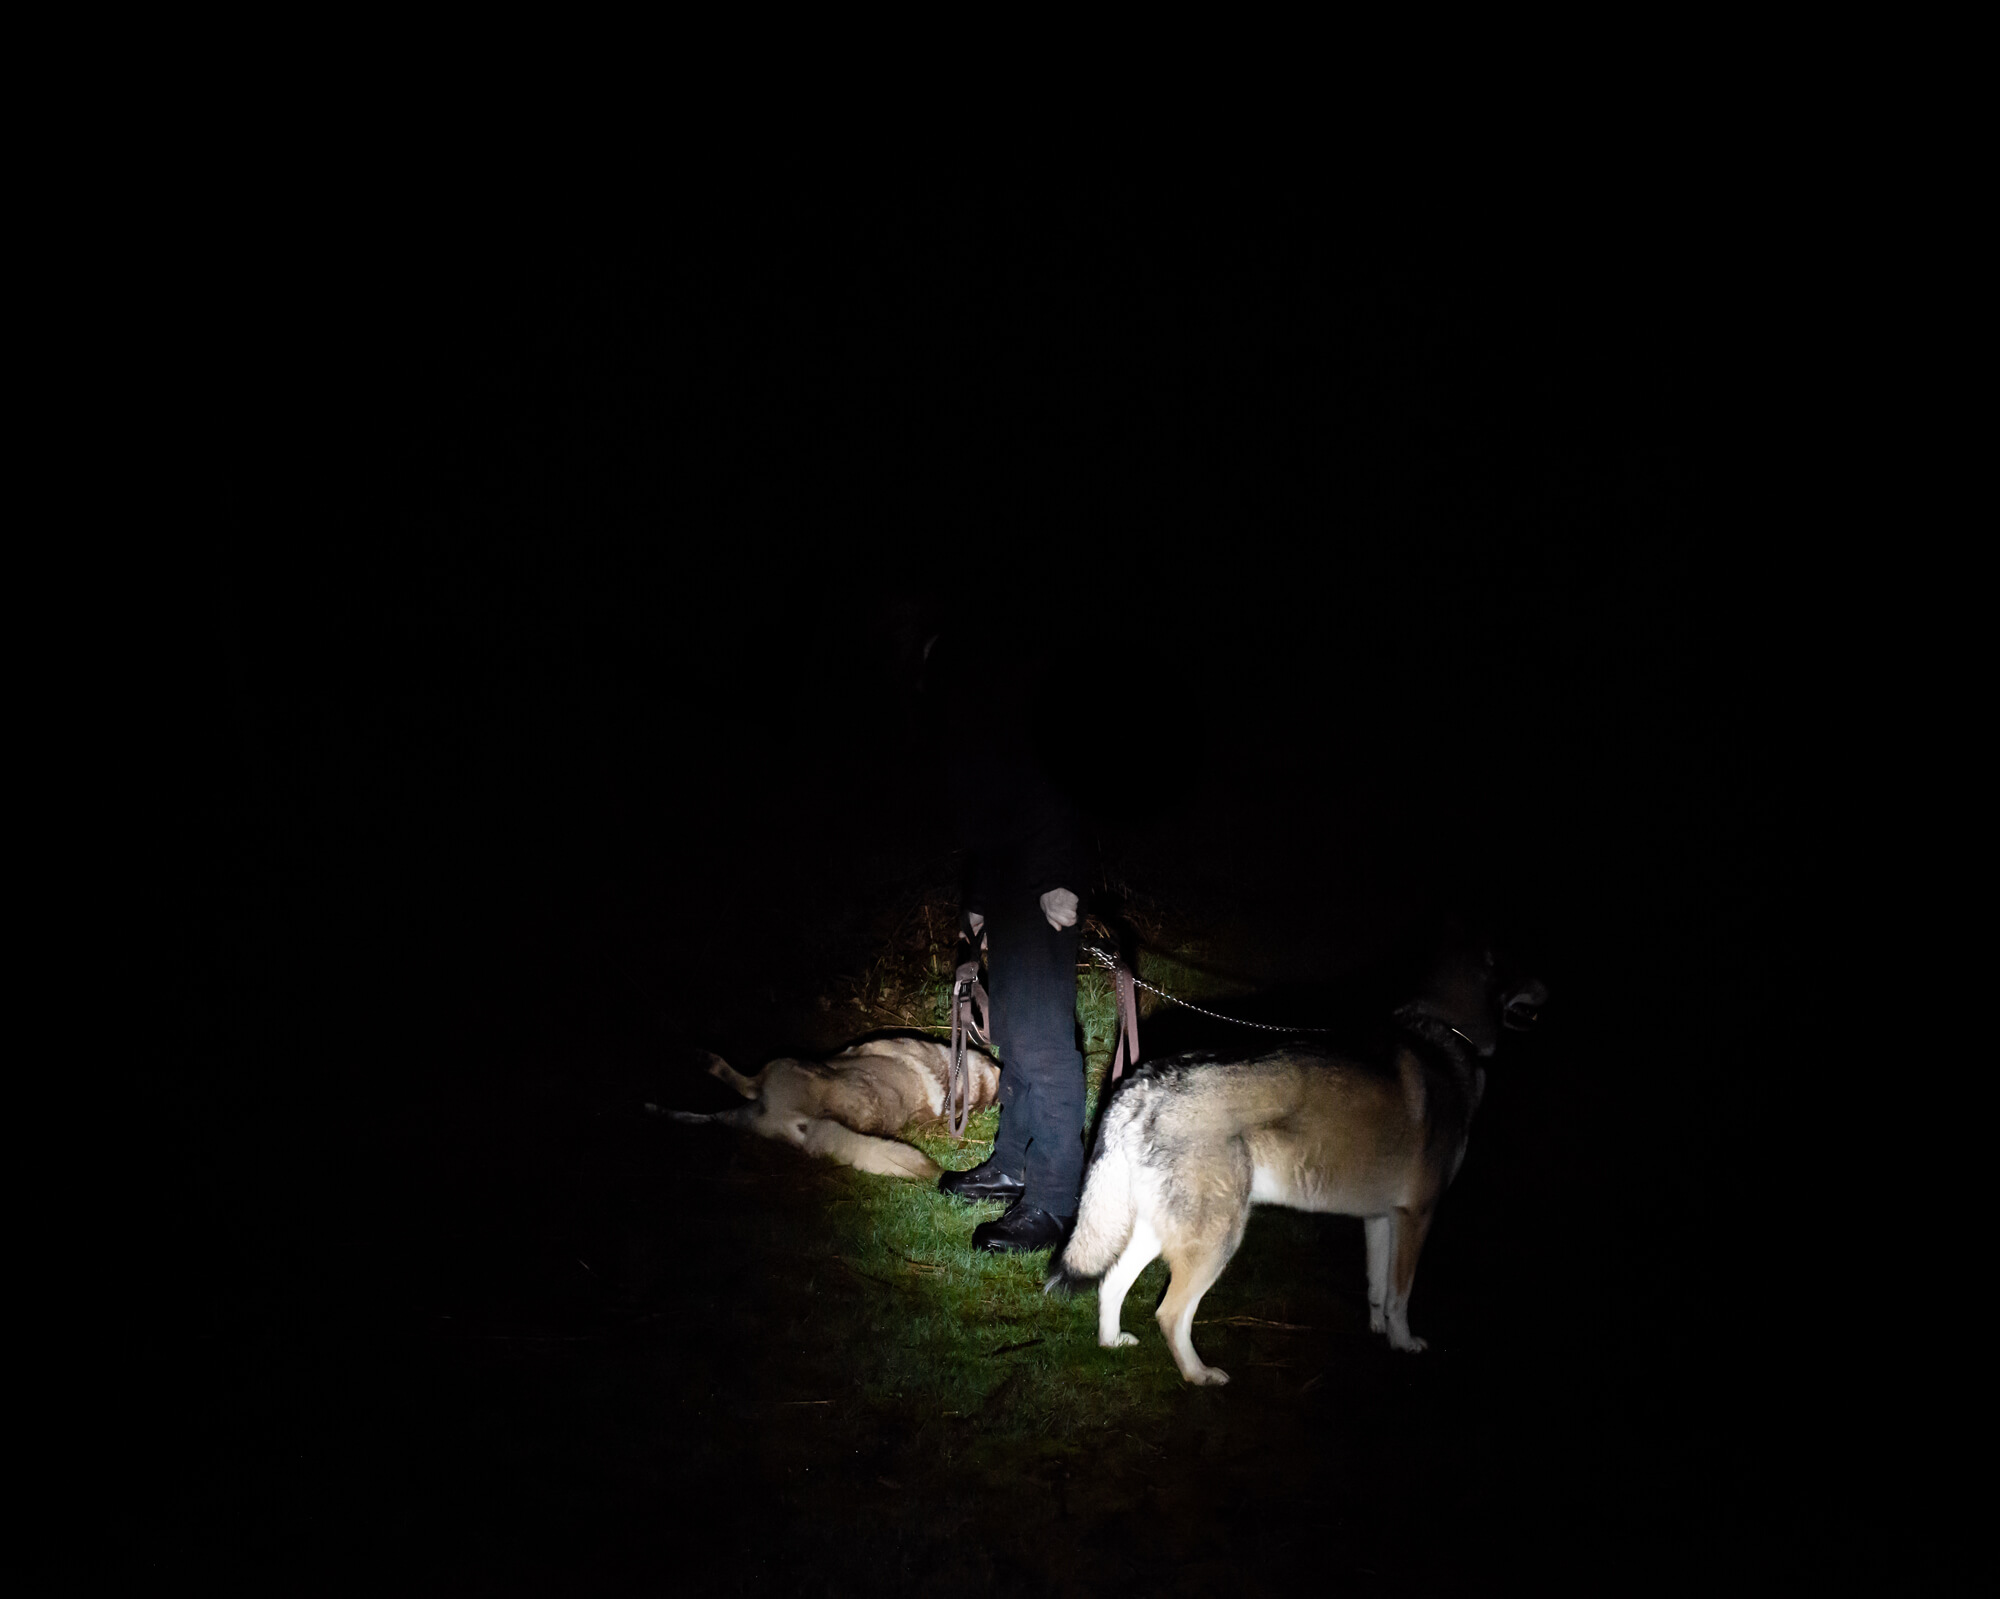 As darkness fell the group arrived. I accompanied Brenda, Bev, Gordy and his two huskies on a night walk around the forest.